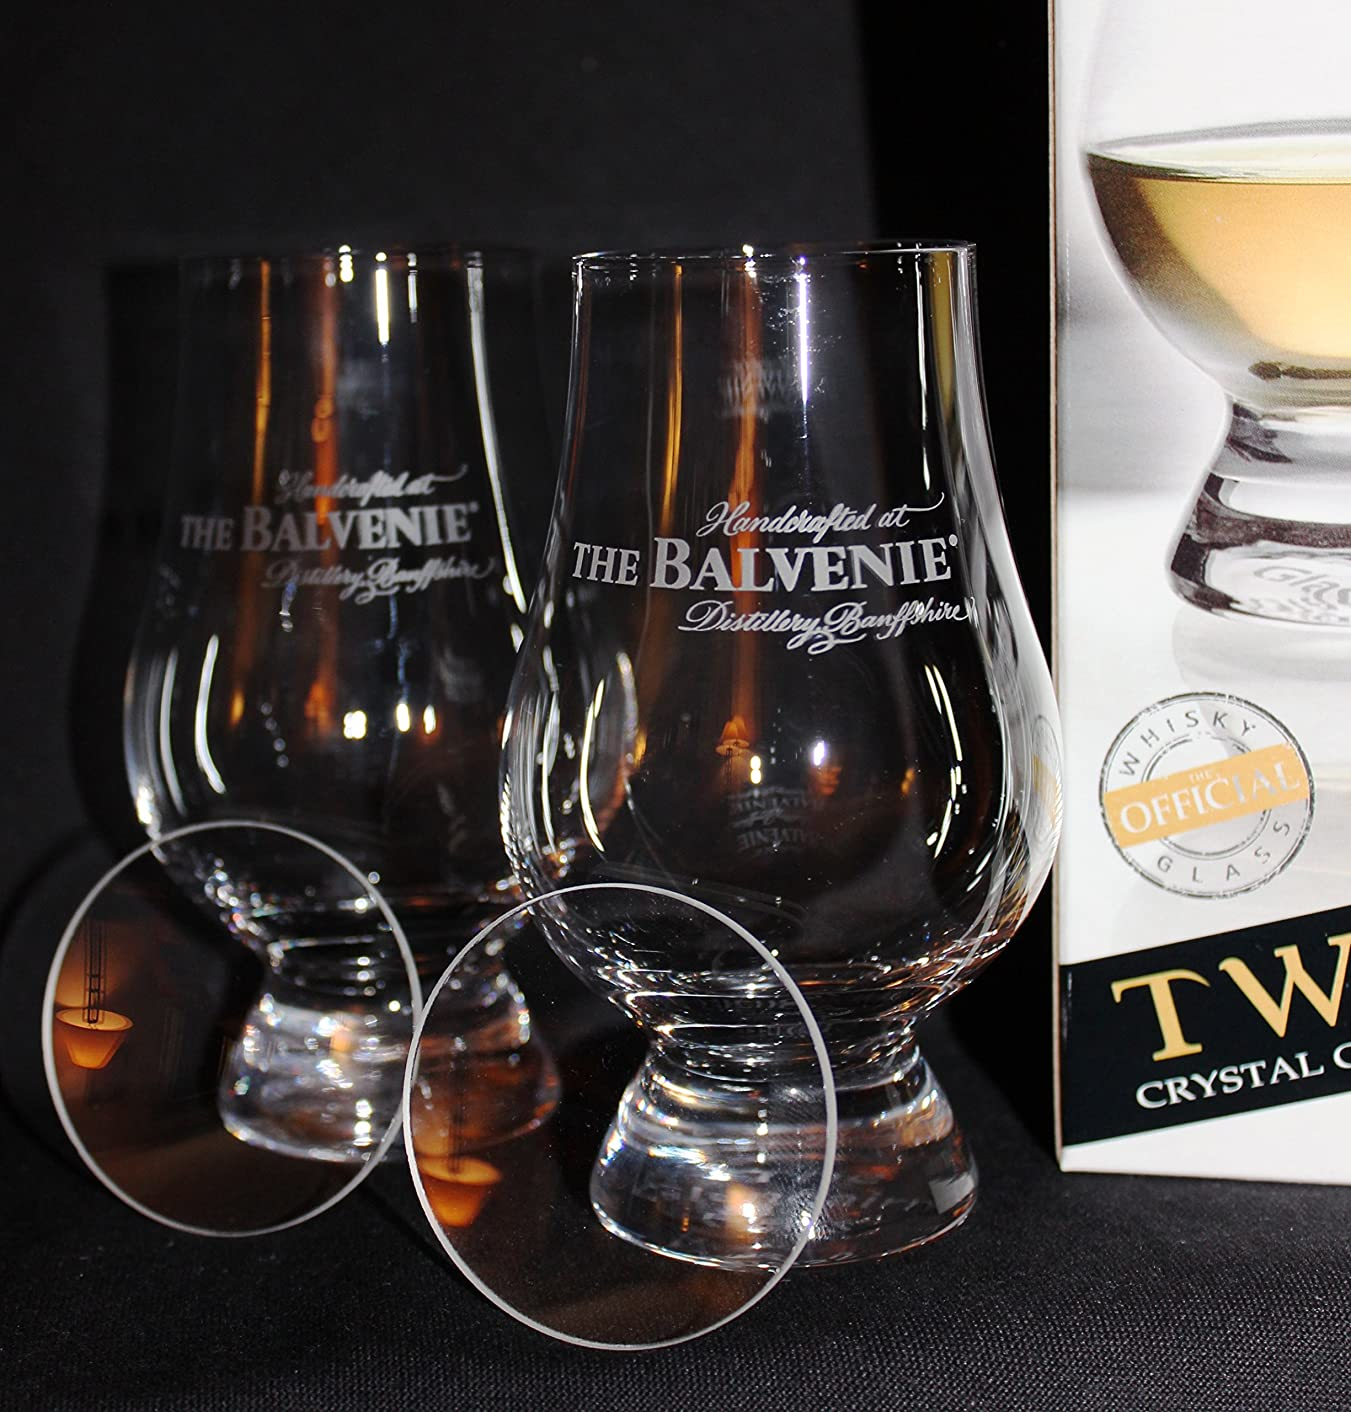 BALVENIE LOGO TWIN PACK GLENCAIRN SCOTCH WHISKY TASTING GLASSES WITH TWO WATCH GLASS COVERS